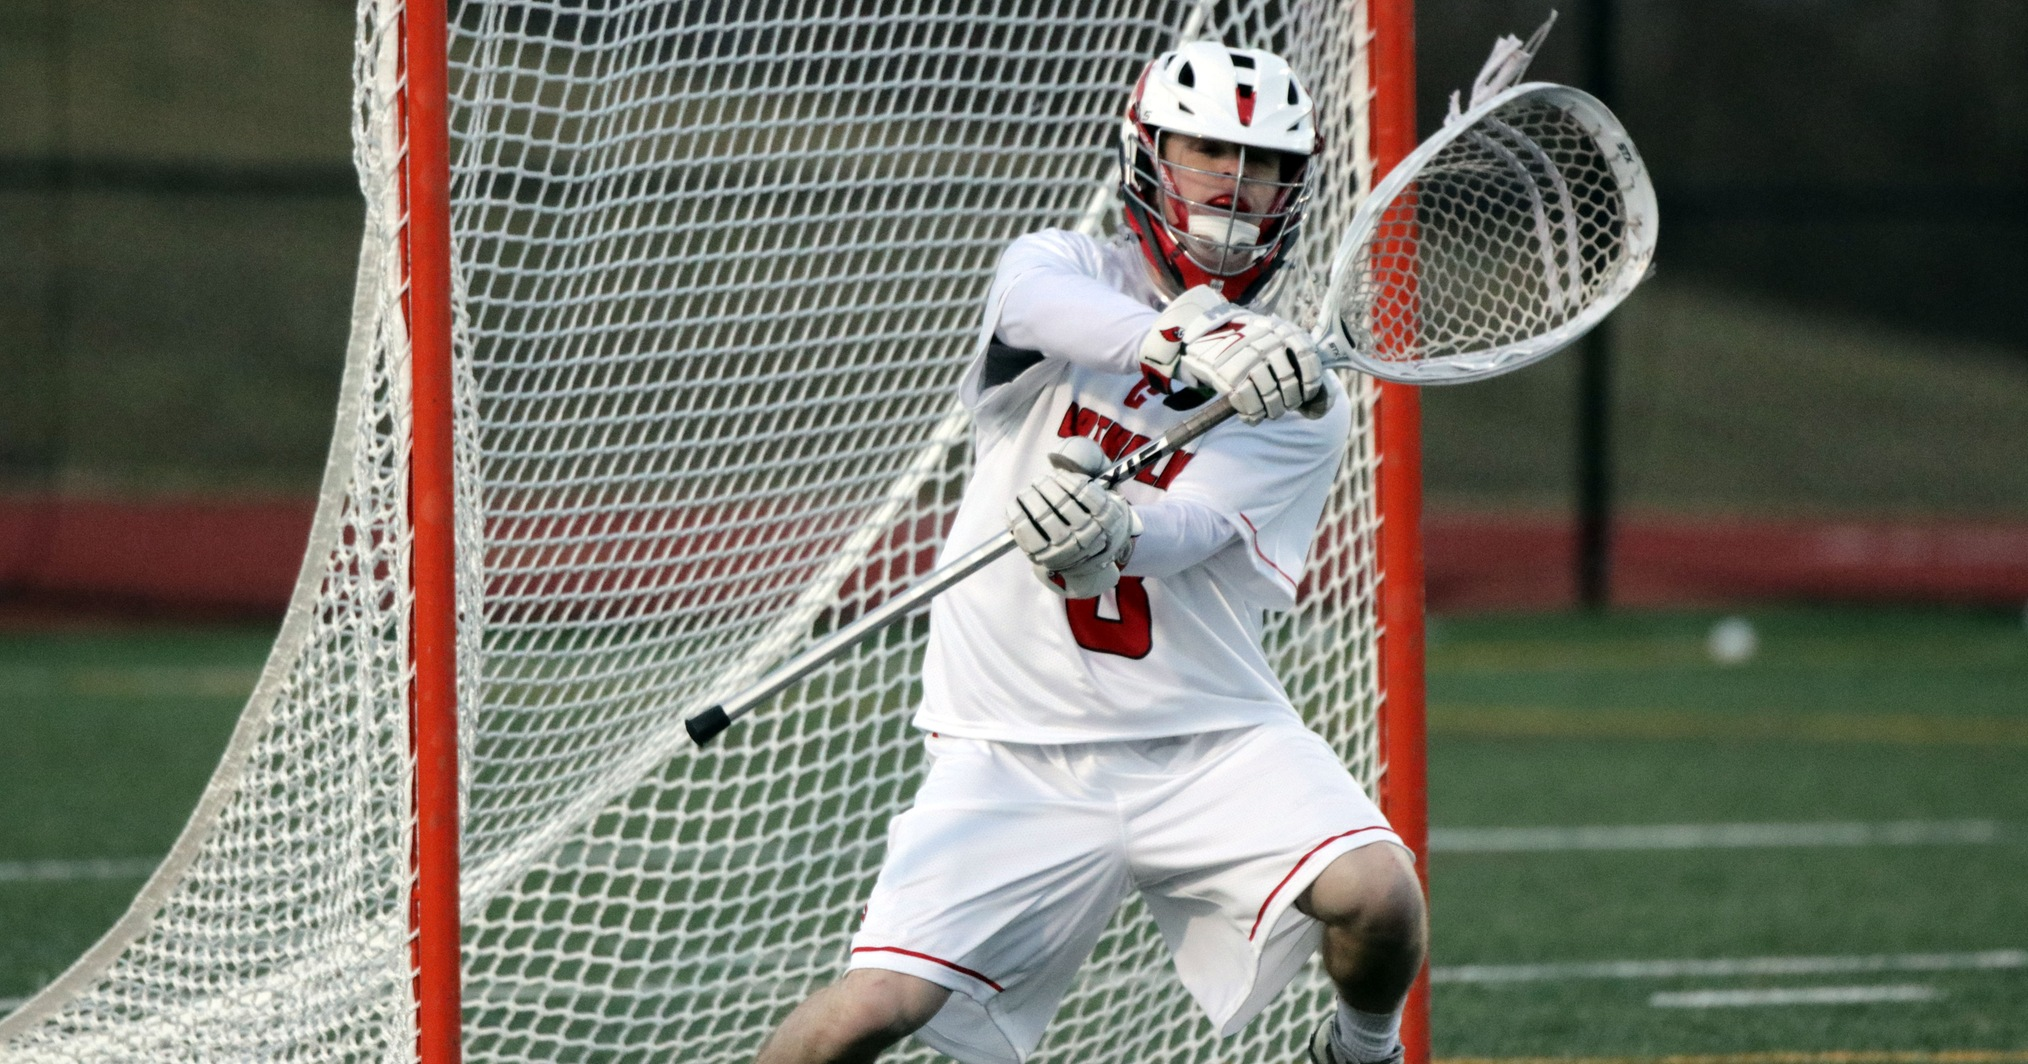 Catenacci, Malone Lead Cardinals to 12-10 Win at Marymount